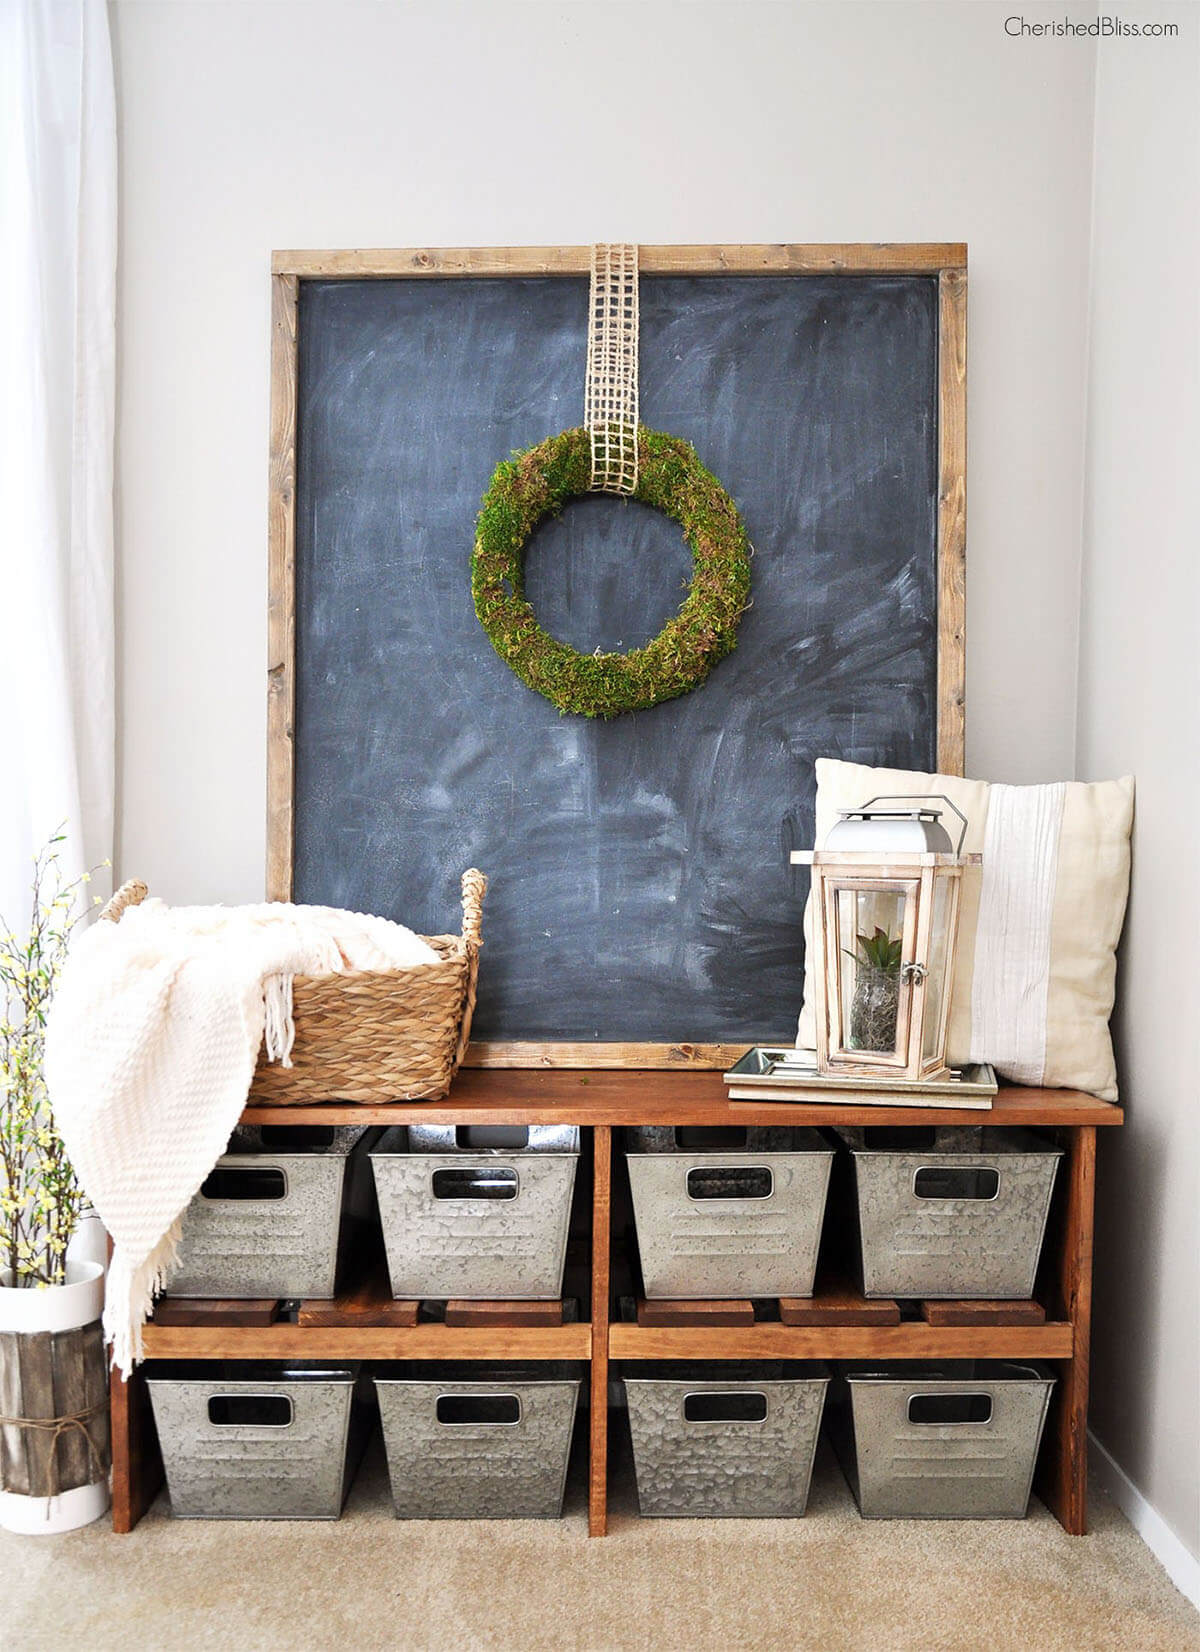 Rustic Farmhouse Framed Chalkboard And Metal Baskets